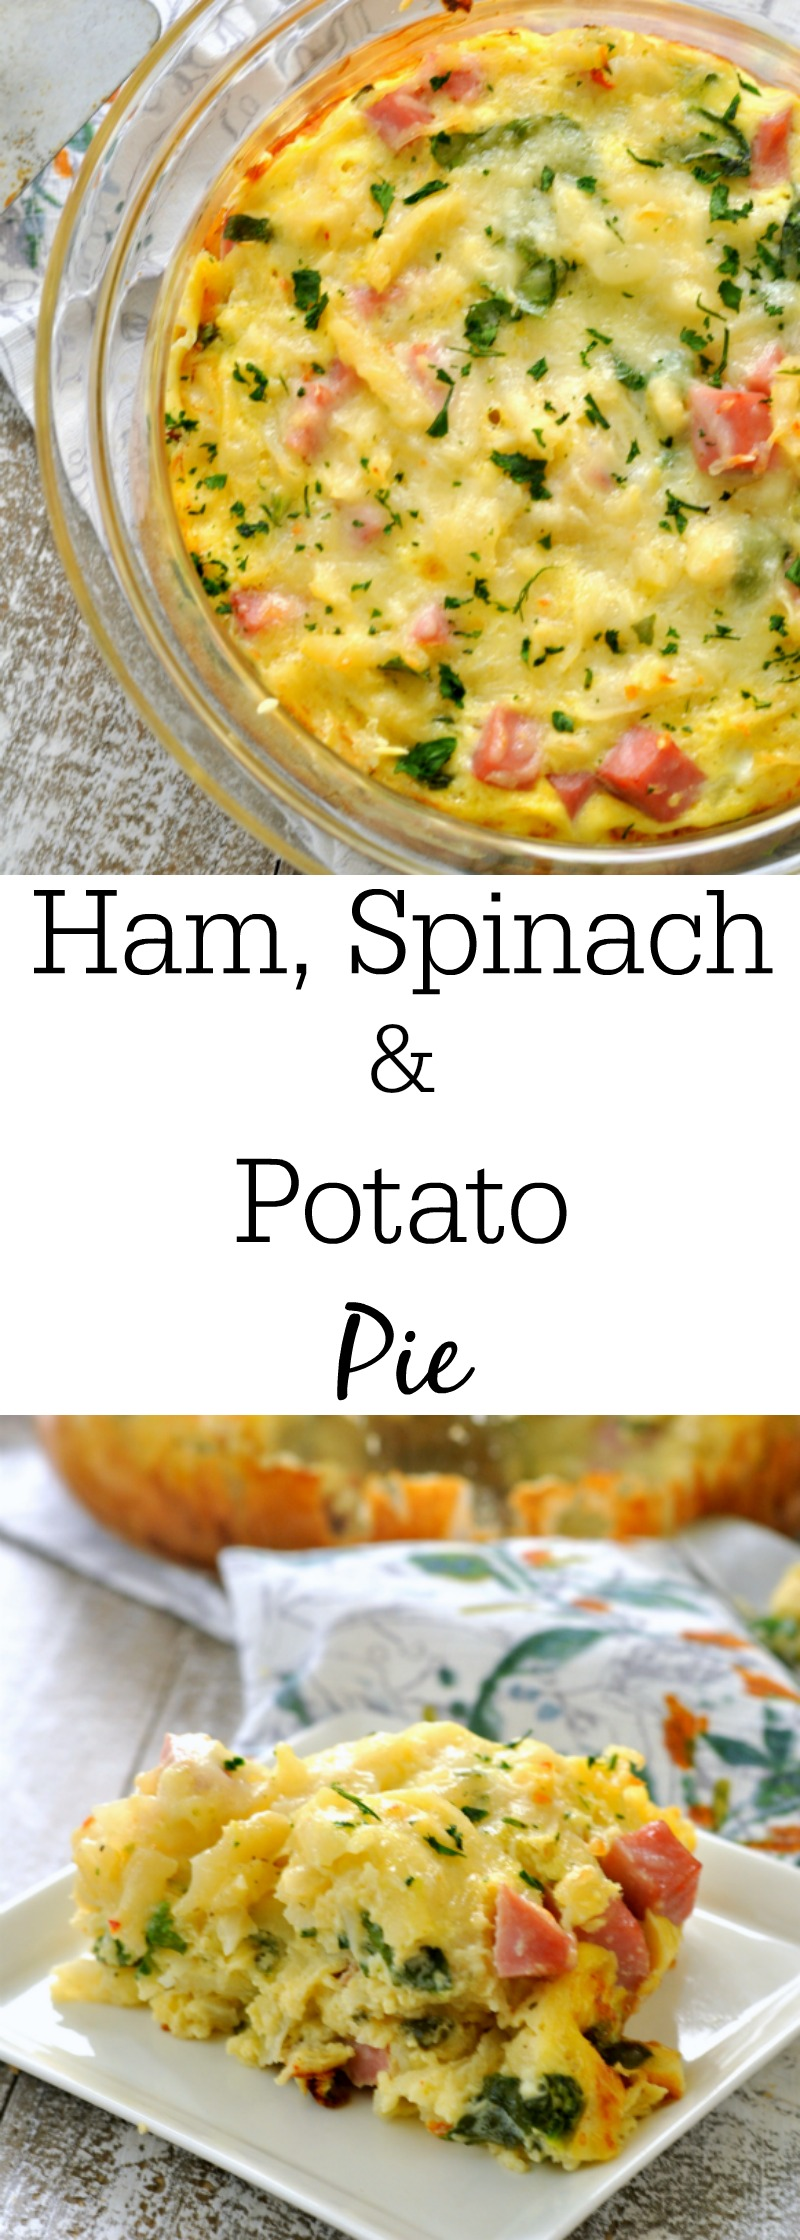 Ham, Potato and Spinach Pie